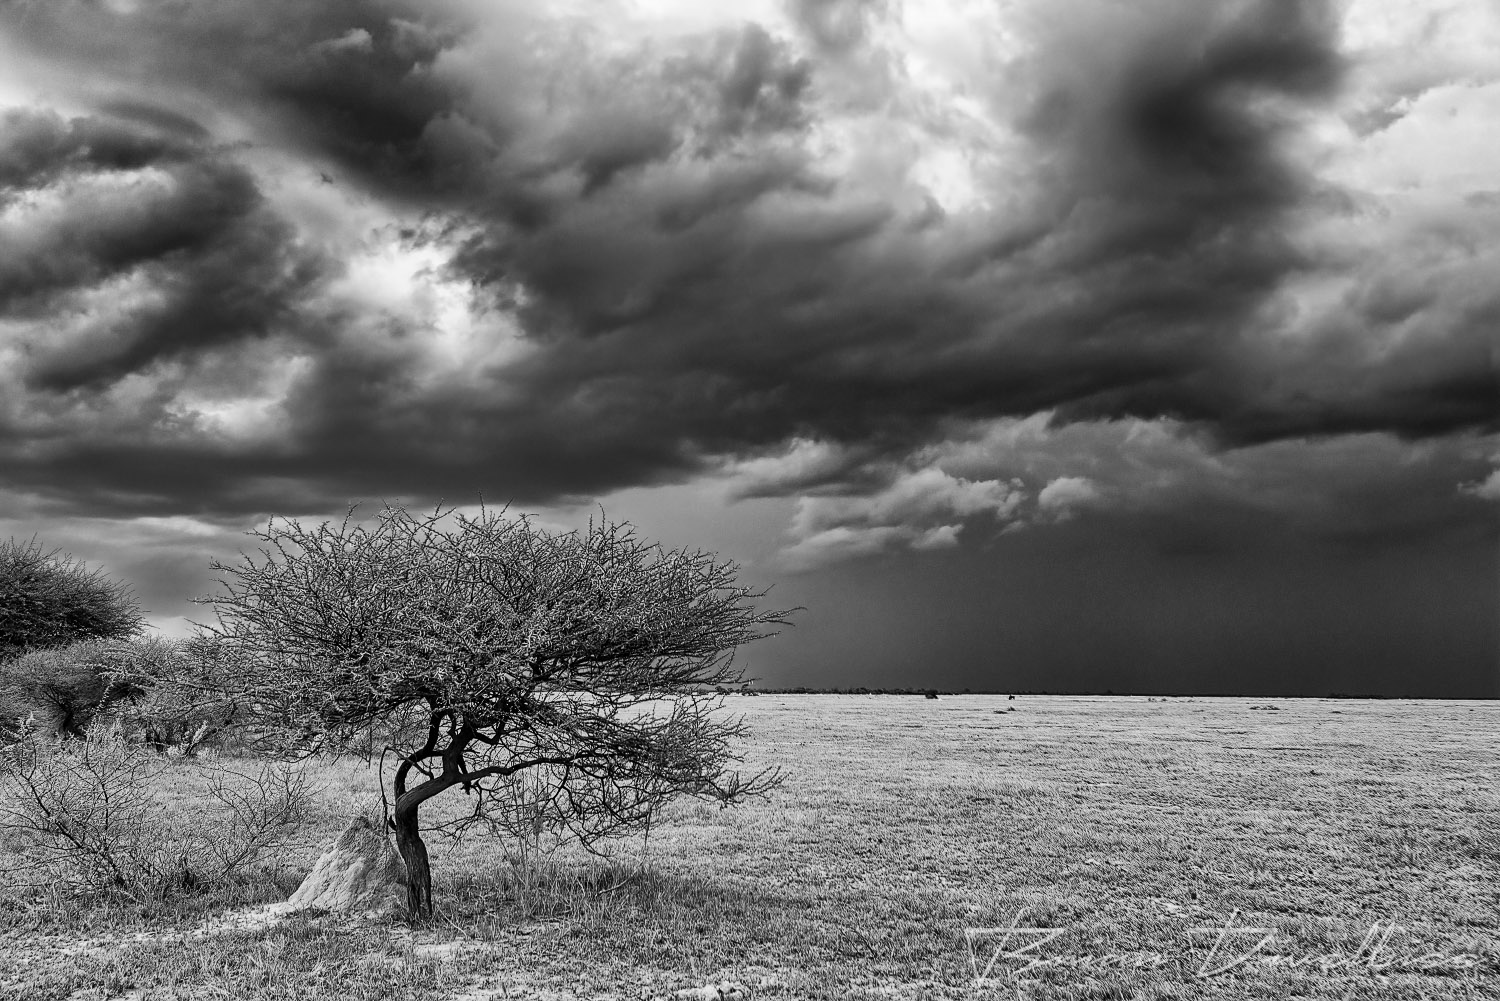 The impressive thunderheads of a swiftly moving afternoon storm in Nxai Pan National Park, Botswana, in black and white.